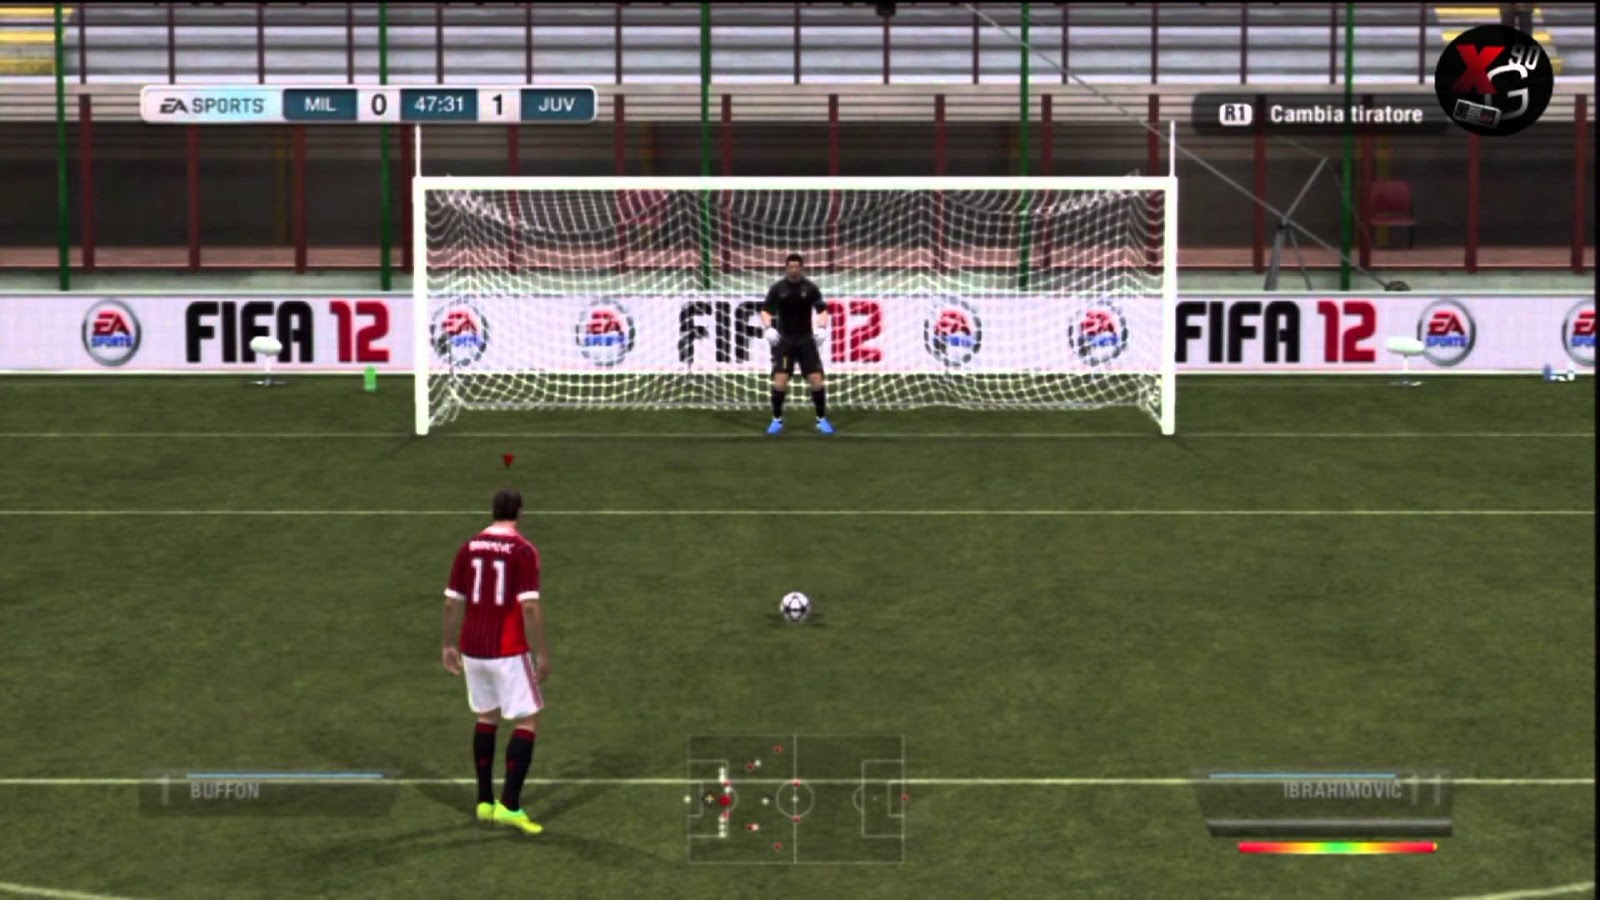 Fifa 12 free download full version for pc compressed